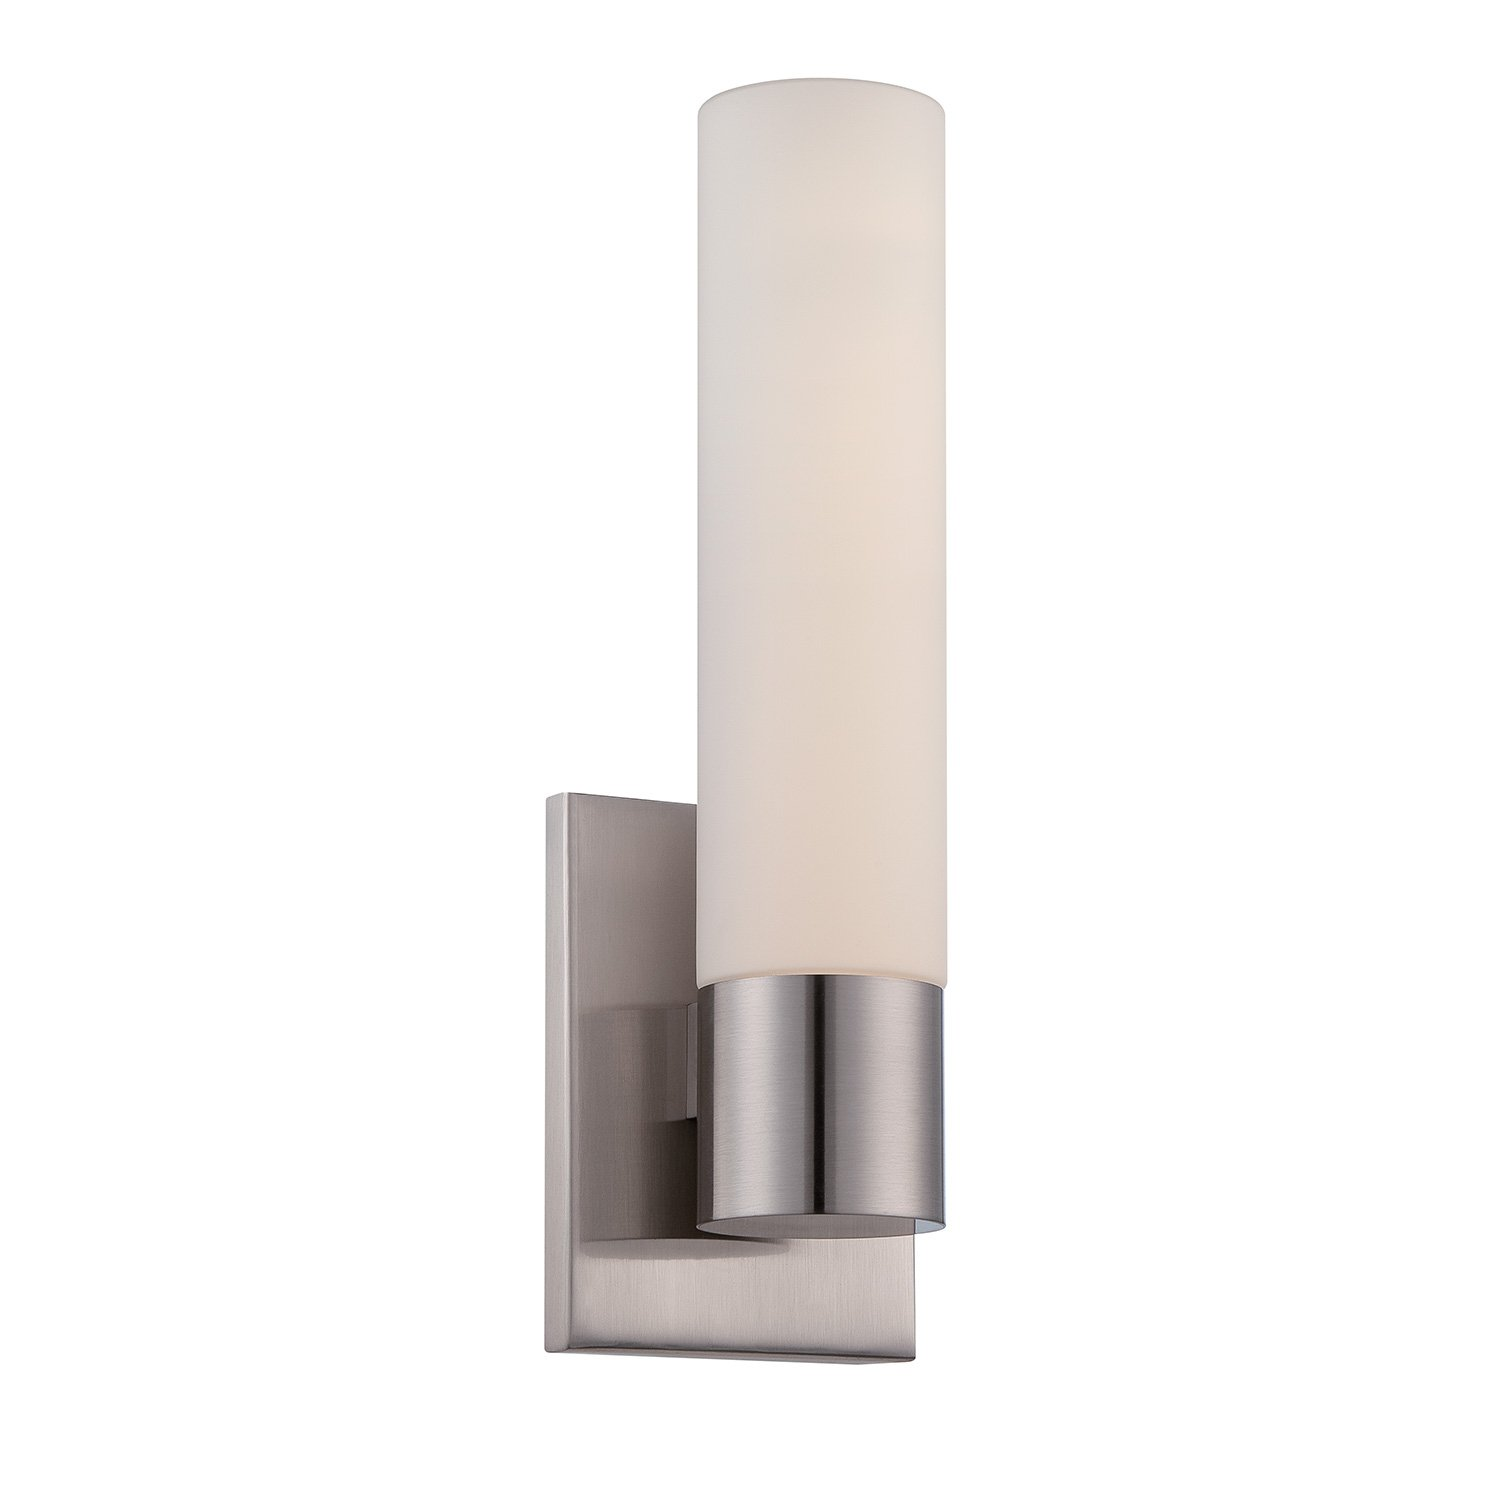 Wac lighting ws 7213 bn small 13 inch elementum vanity sconce wac lighting ws 7213 bn small 13 inch elementum vanity sconce amazon arubaitofo Gallery